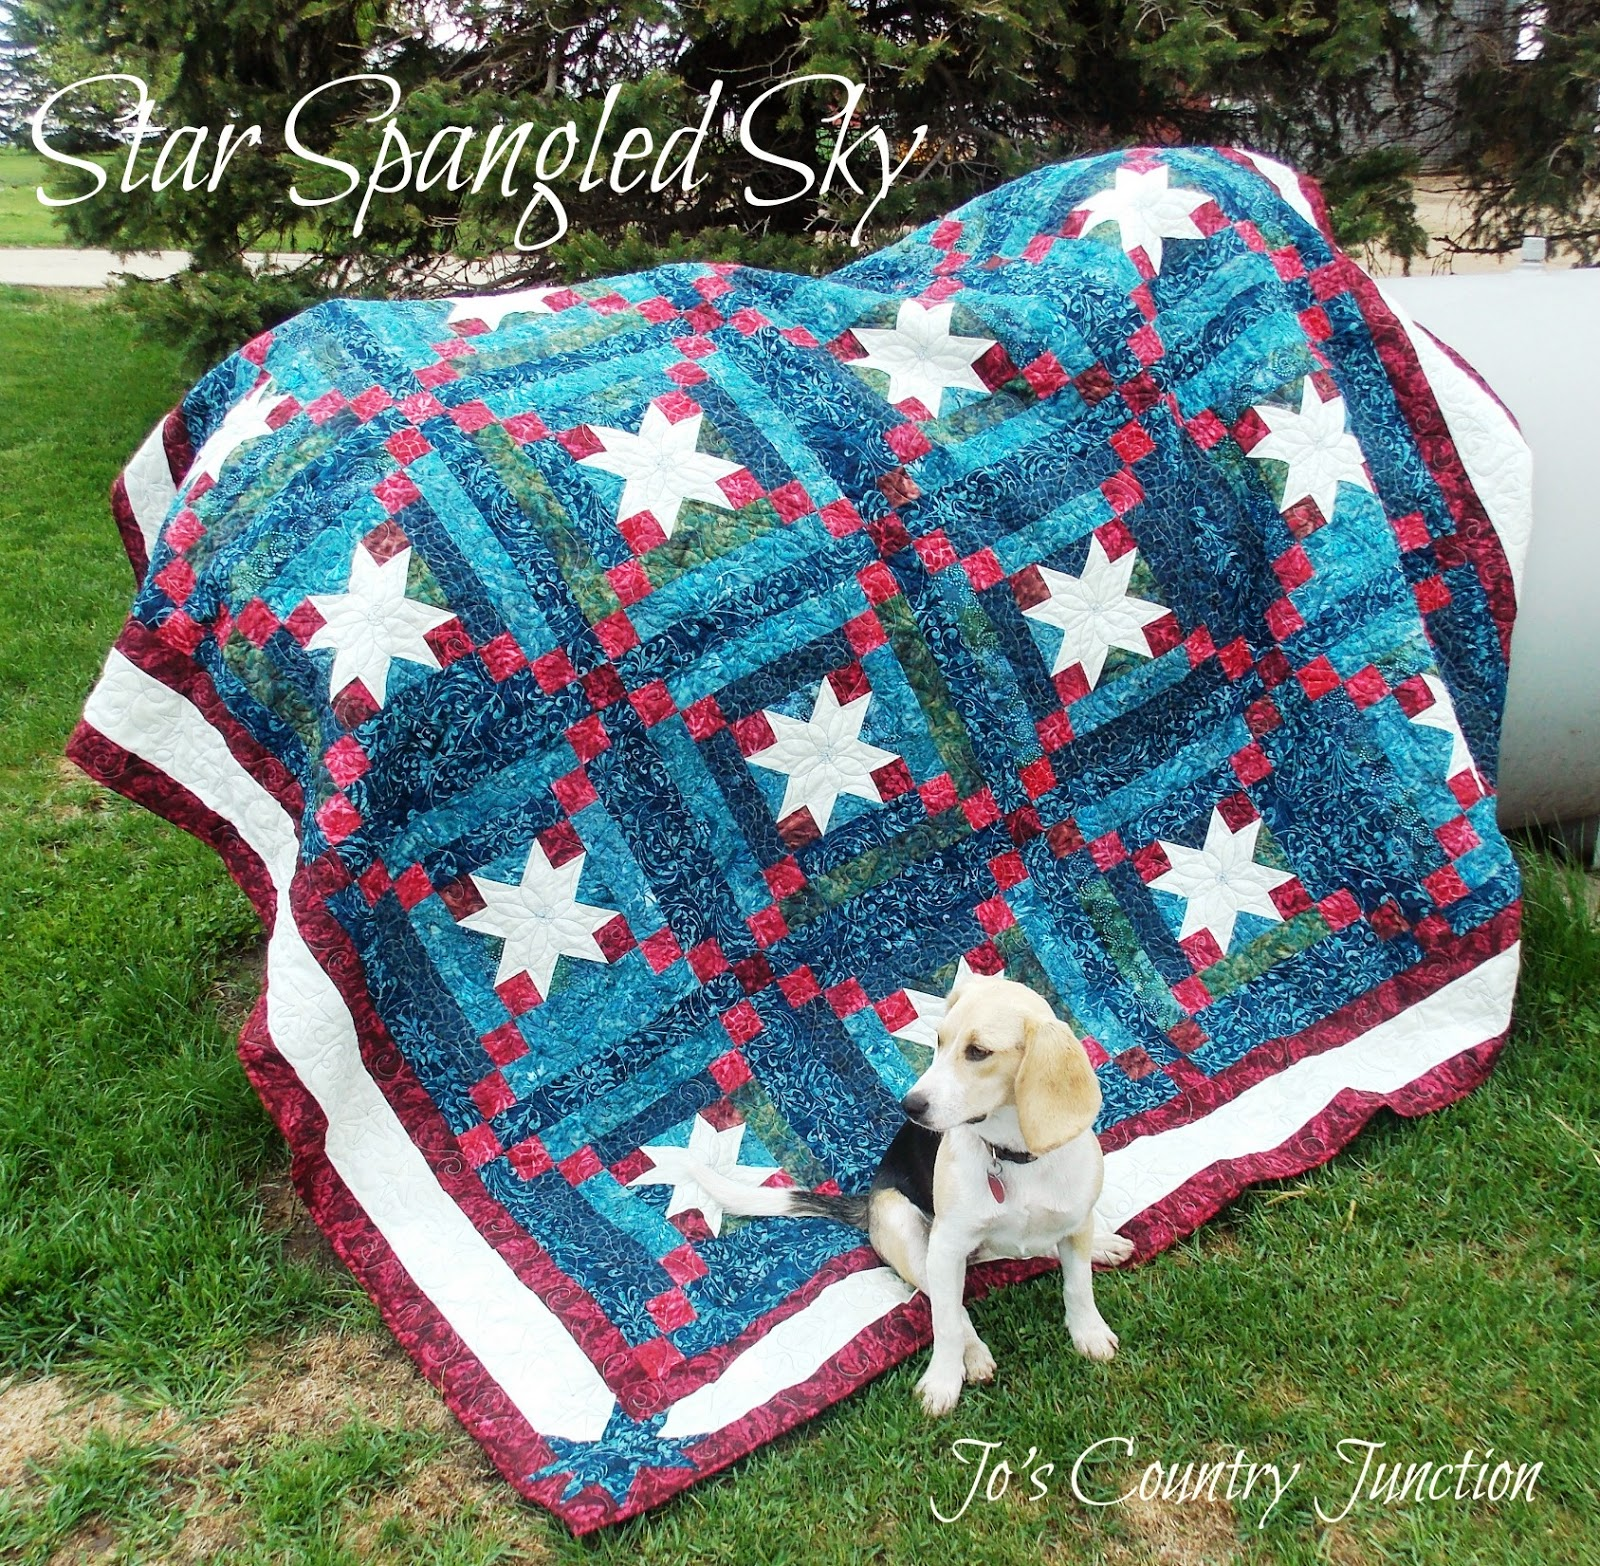 Free pattern day patriotic and flag quilts quilt inspiration show your colors free pattern with prairie points by susan k cleveland at pieces be with you the link to the free pattern is on the left sidebar bankloansurffo Image collections